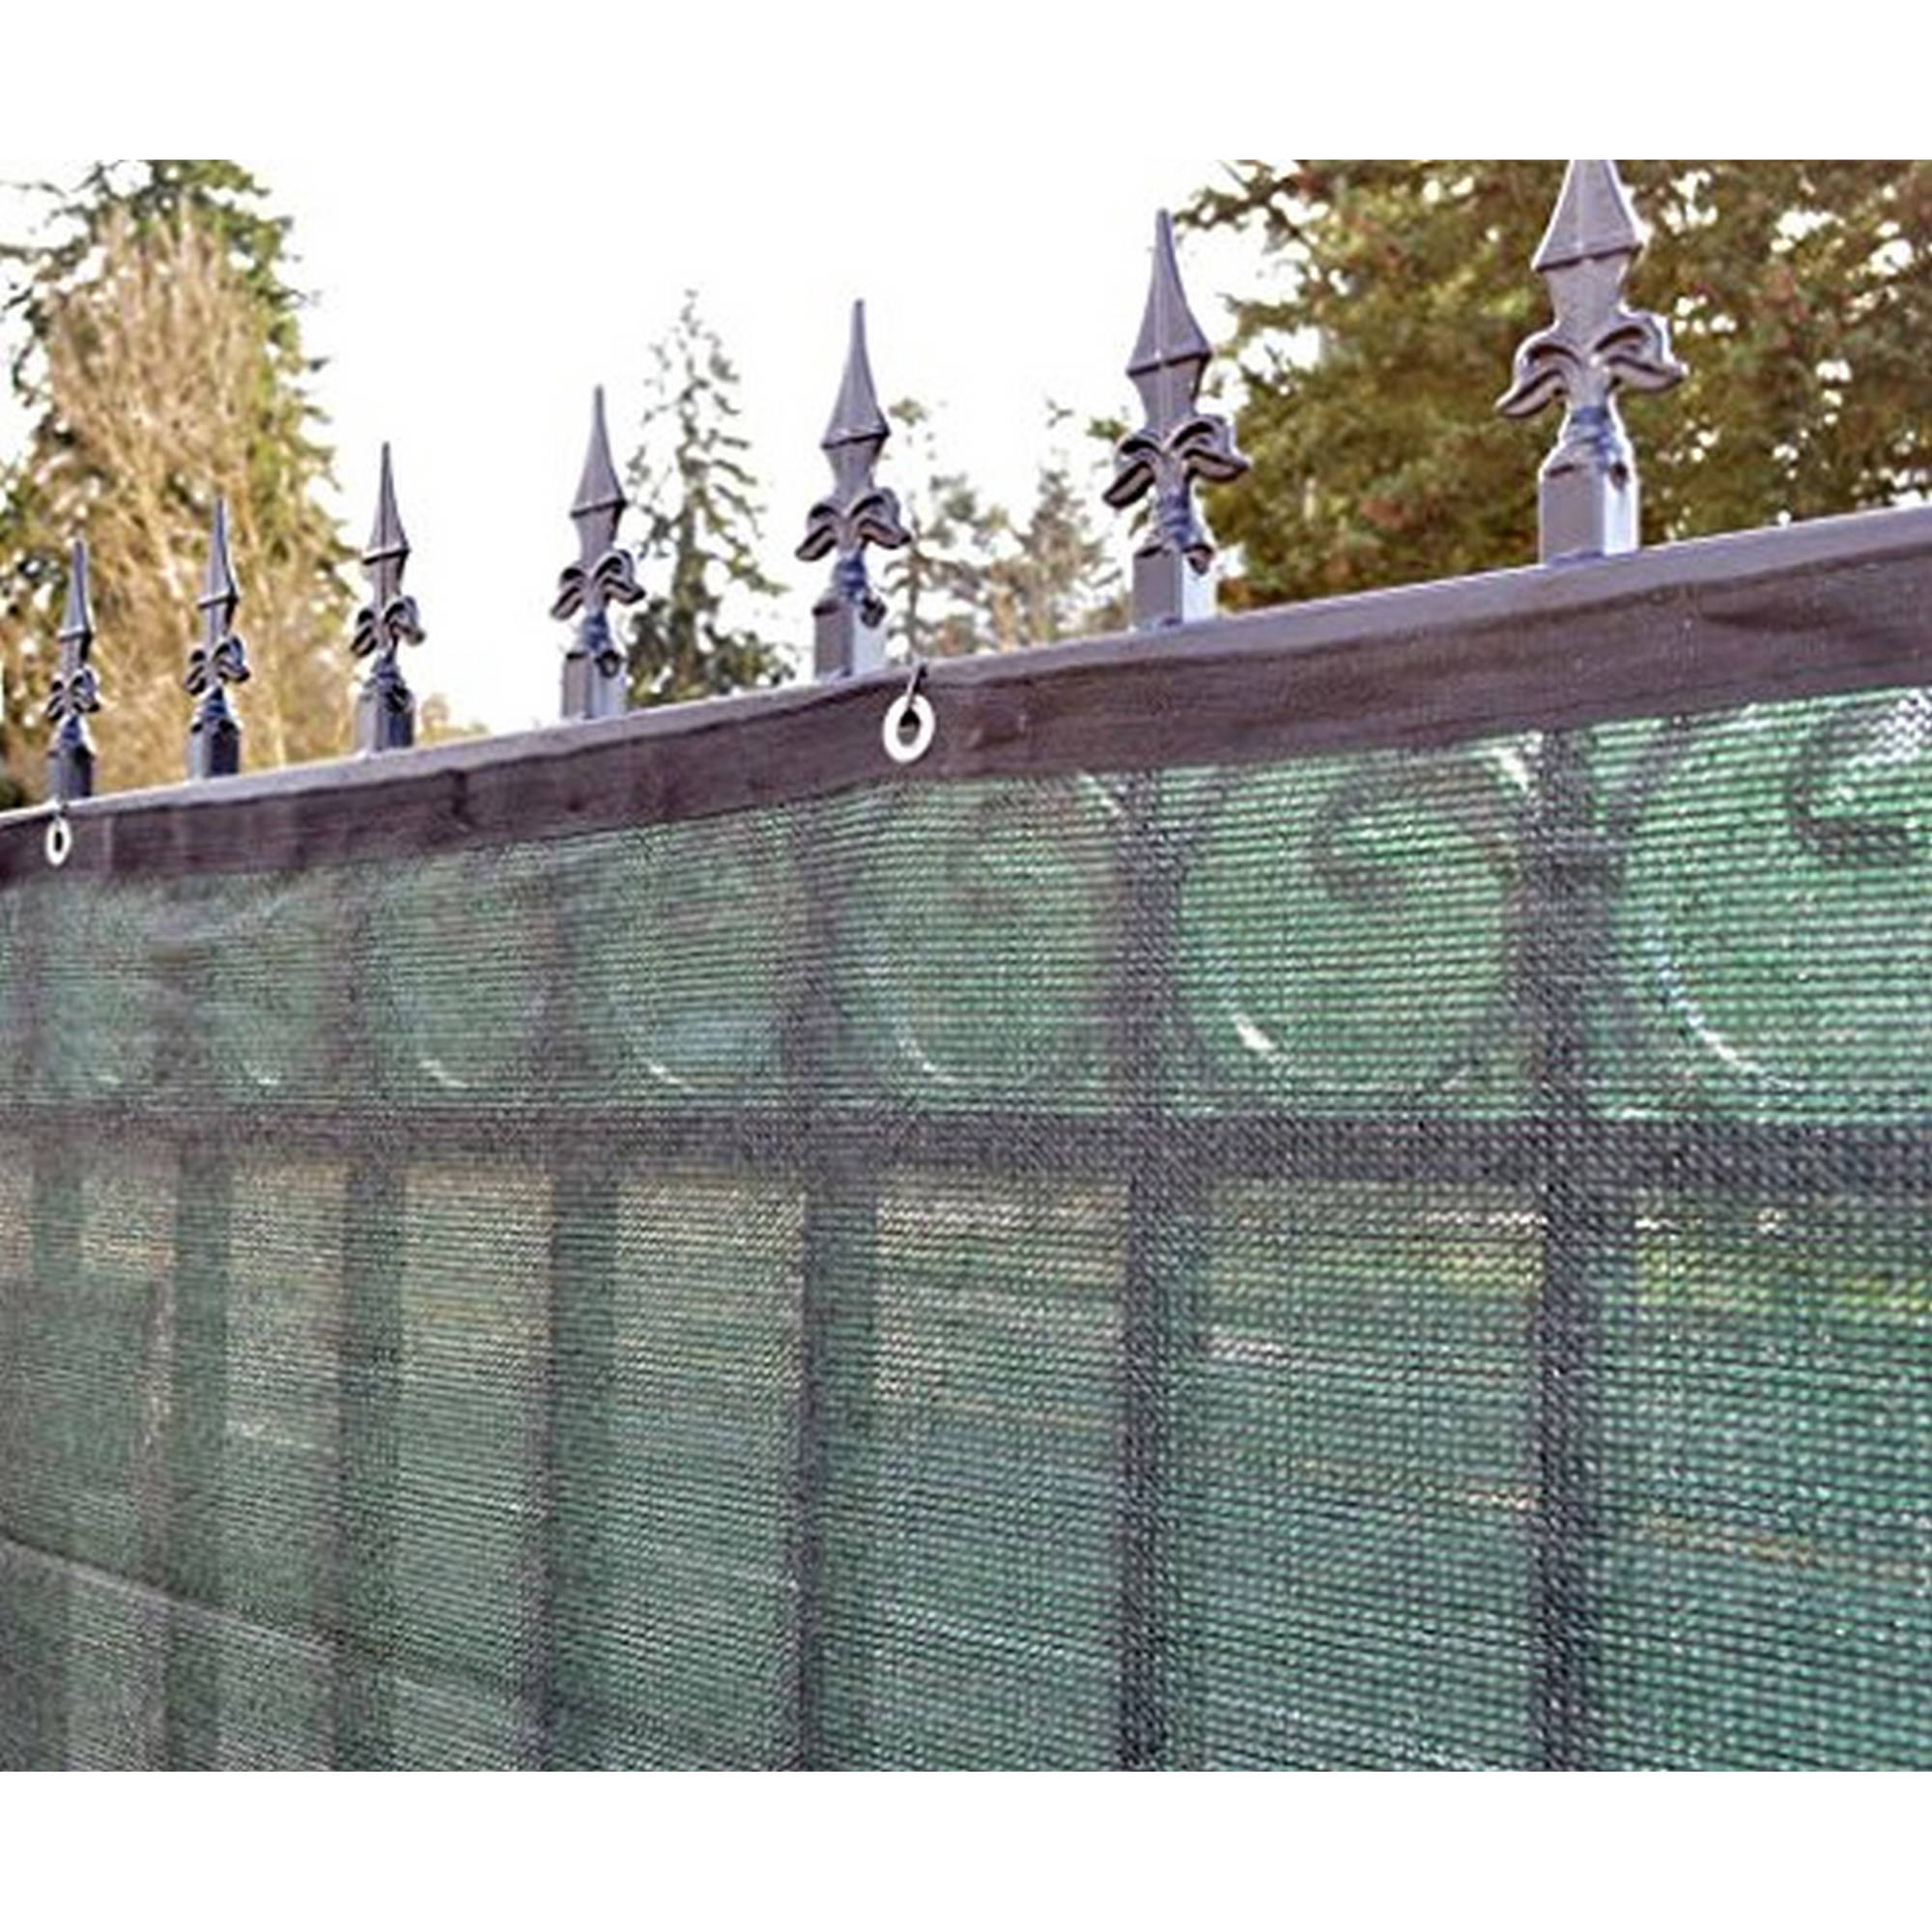 Aleko 6u0027 X 50u0027 Dark Green Fence Privacy Screen Windscreen Shade Cover Mesh  Fabric   Walmart.com